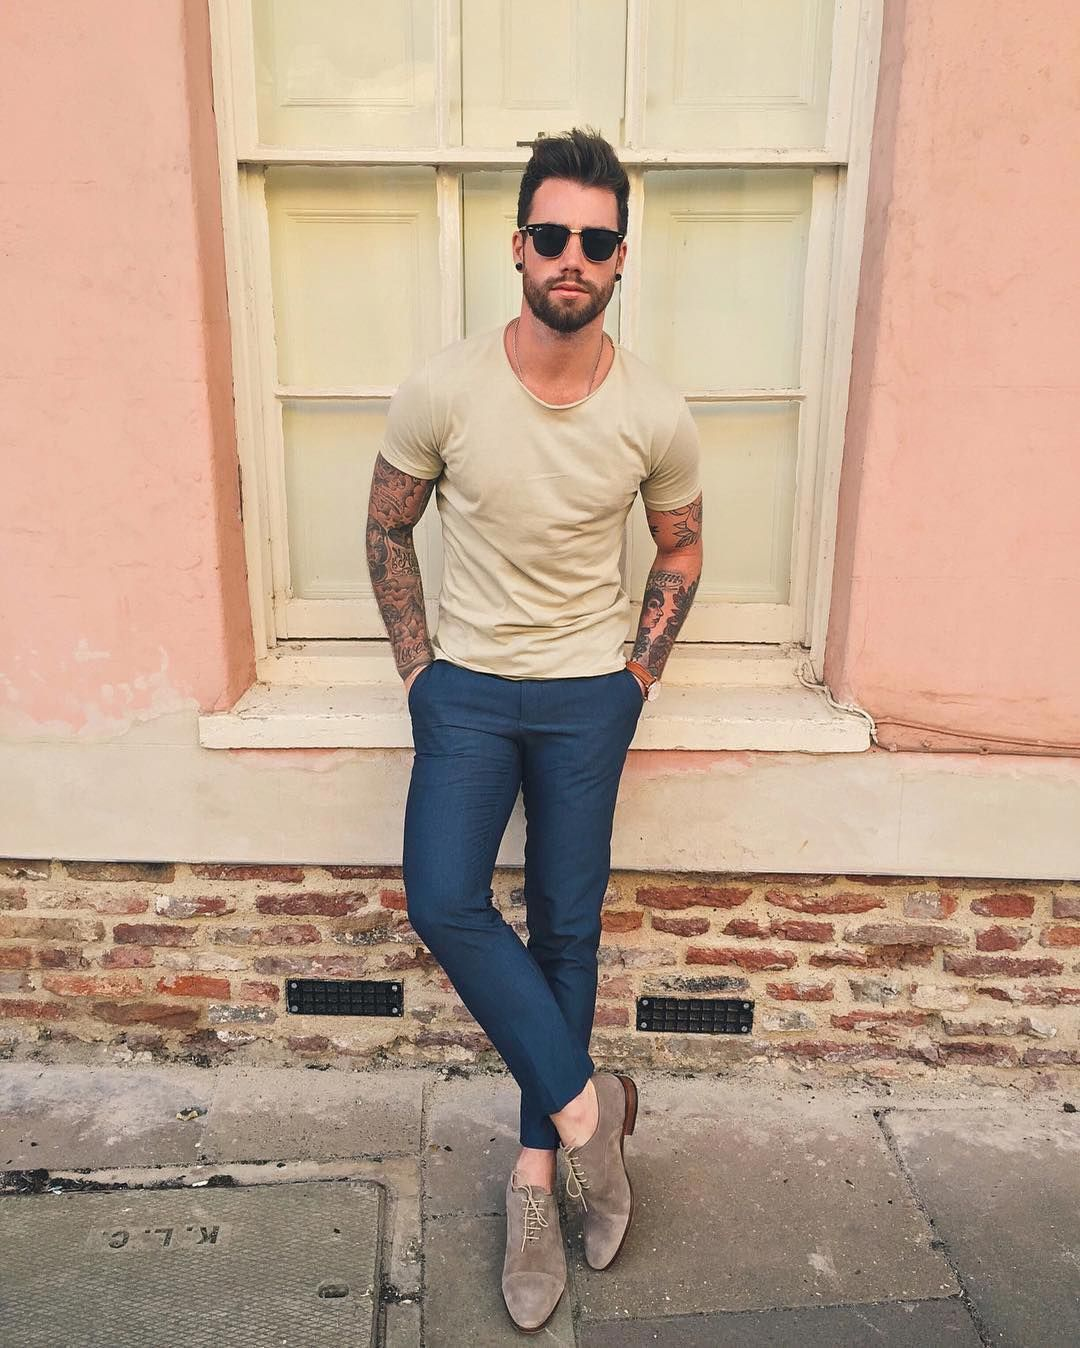 To acquire Clothing Summer styles for men pictures trends